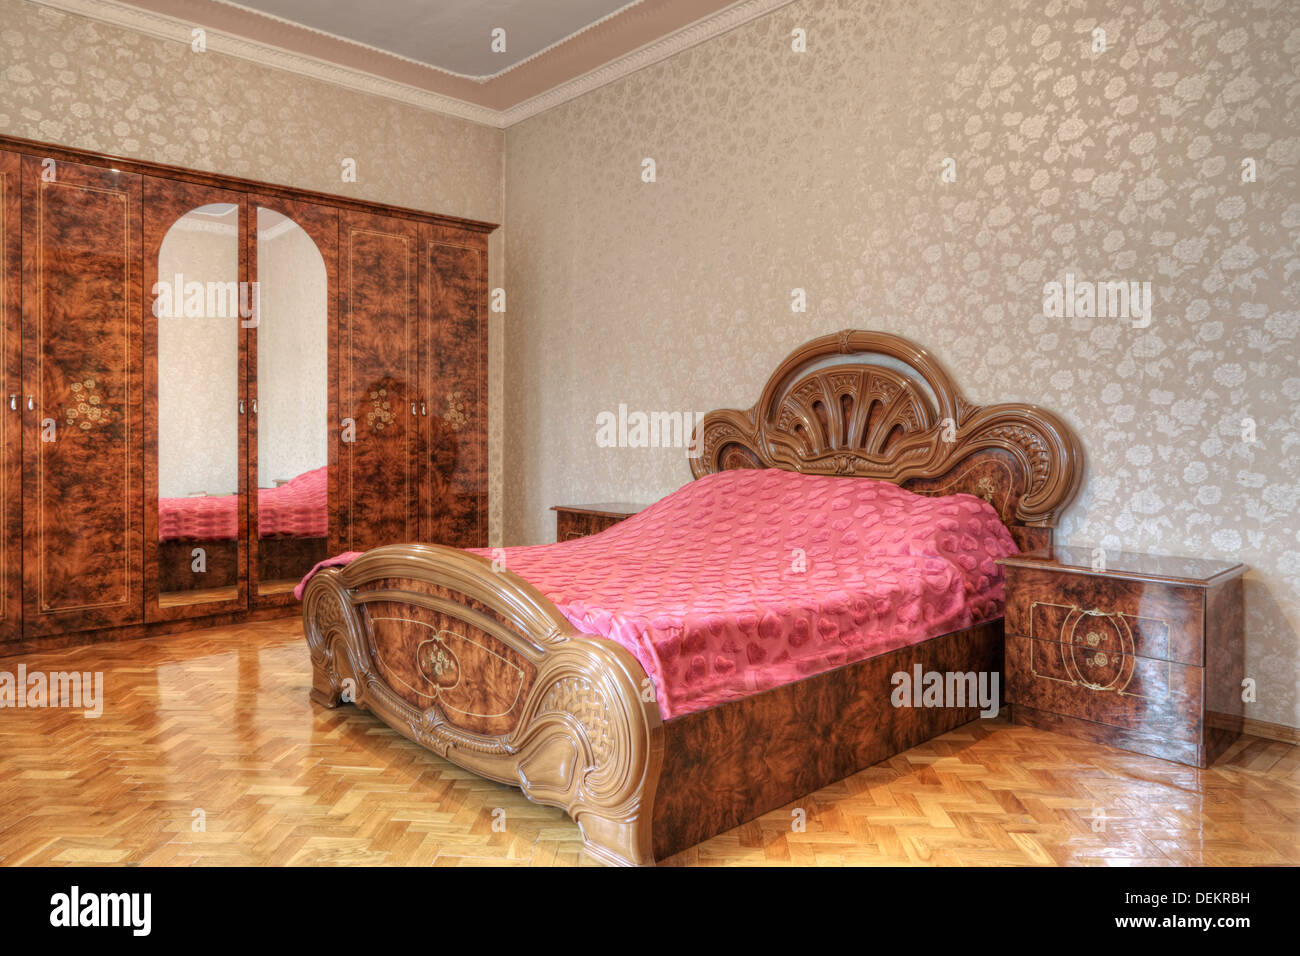 Wooden bedroom furniture stock photos wooden bedroom furniture